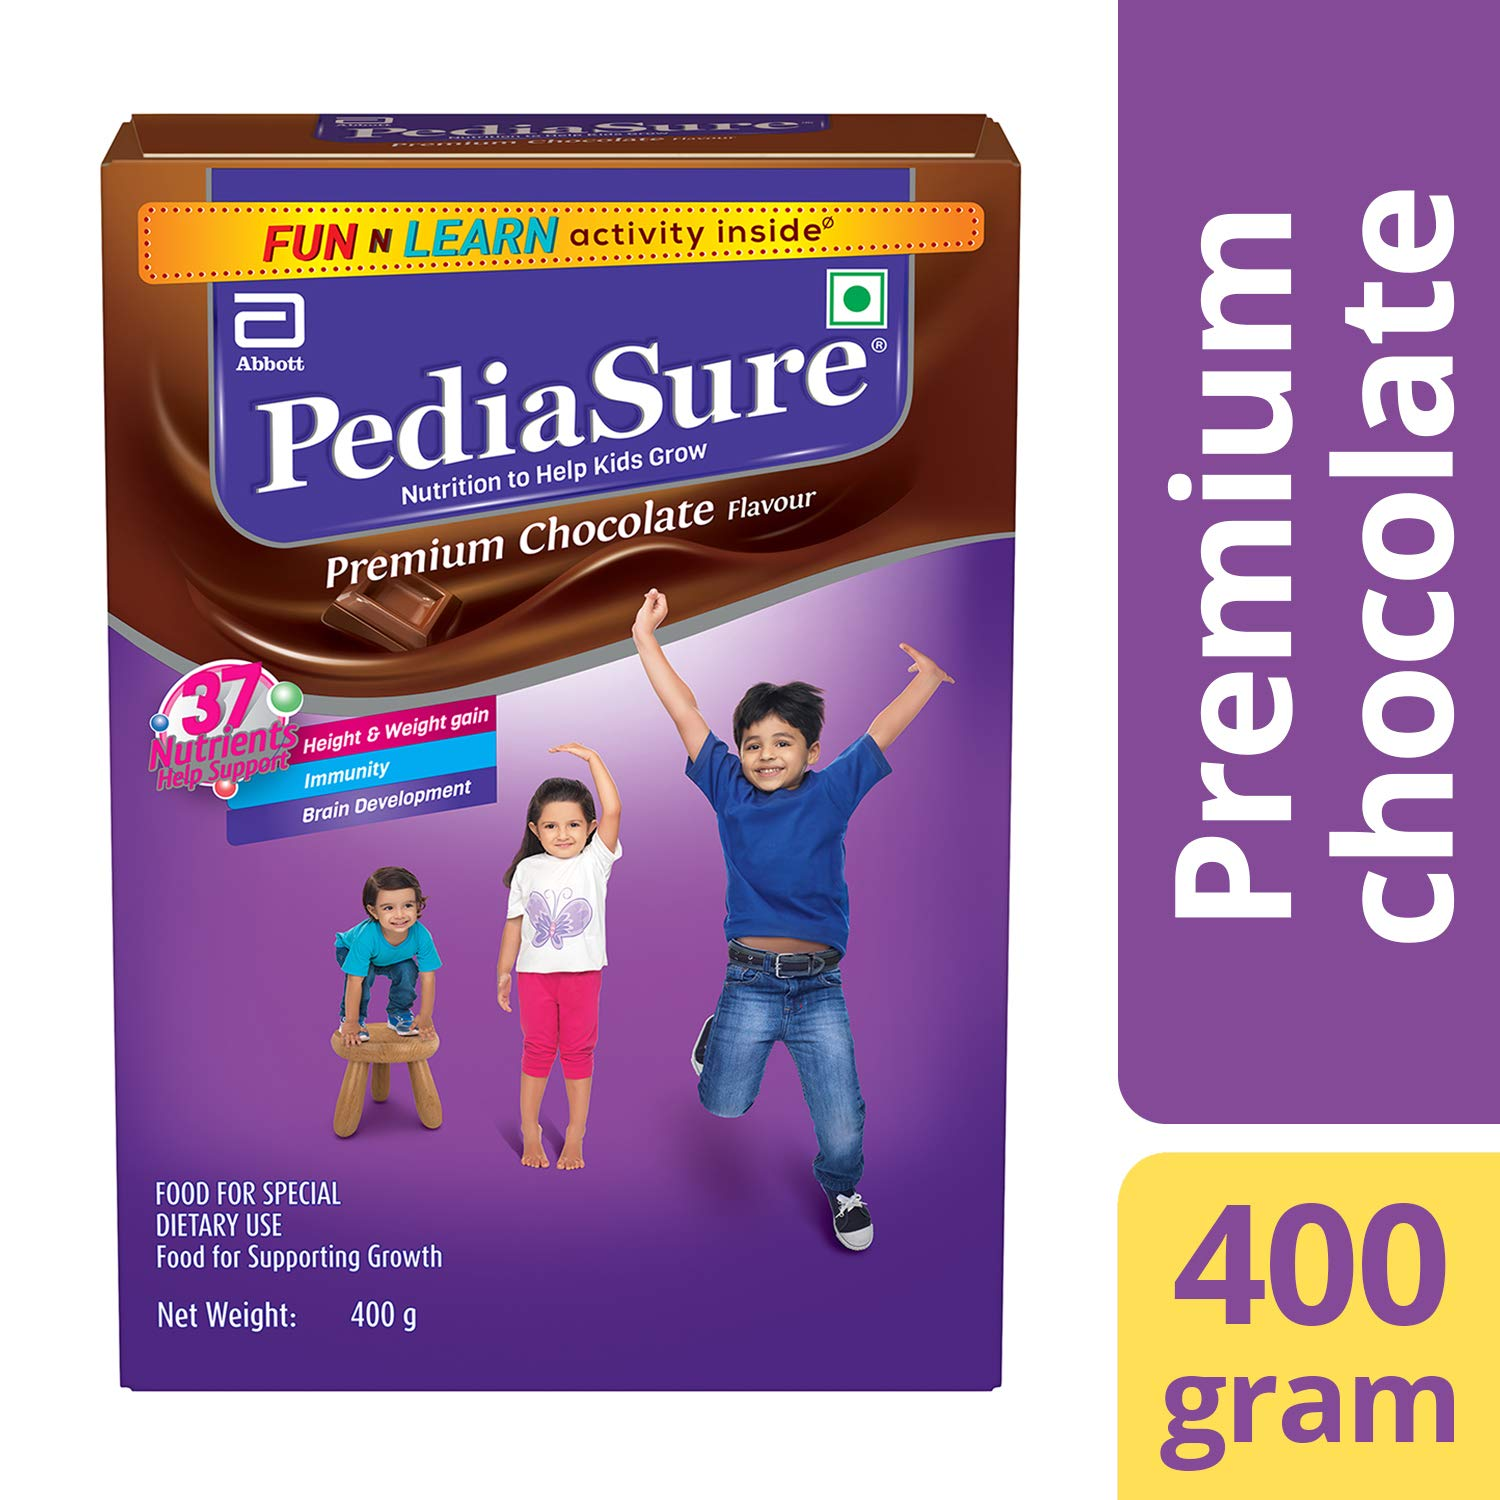 Buy Pediasure Health Nutrition Drink Powder For Kids Growth 400g Enfagrow A Plus 3 1800 Gram Vanilla Box Chocolate Online At Low Prices In India